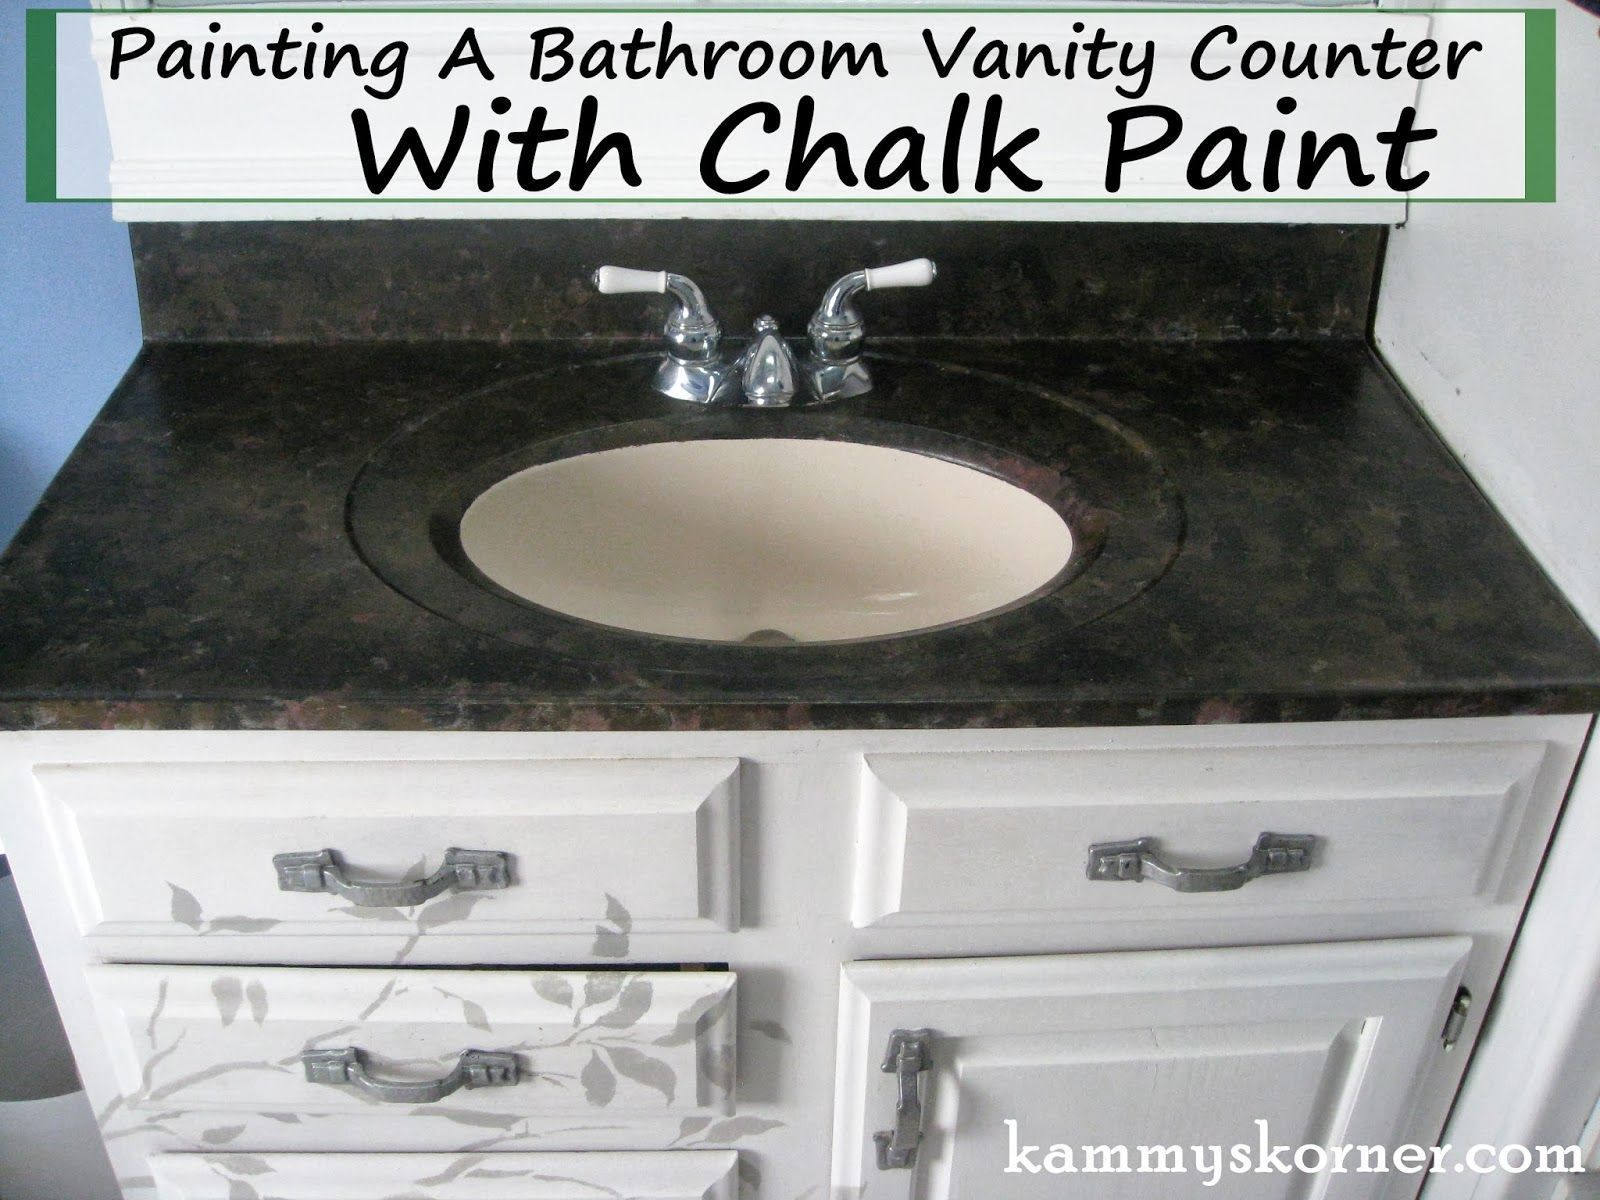 Painting A Bathroom Vanity Counter With Chalk Paint Someday Crafts - Painting bathroom vanity top